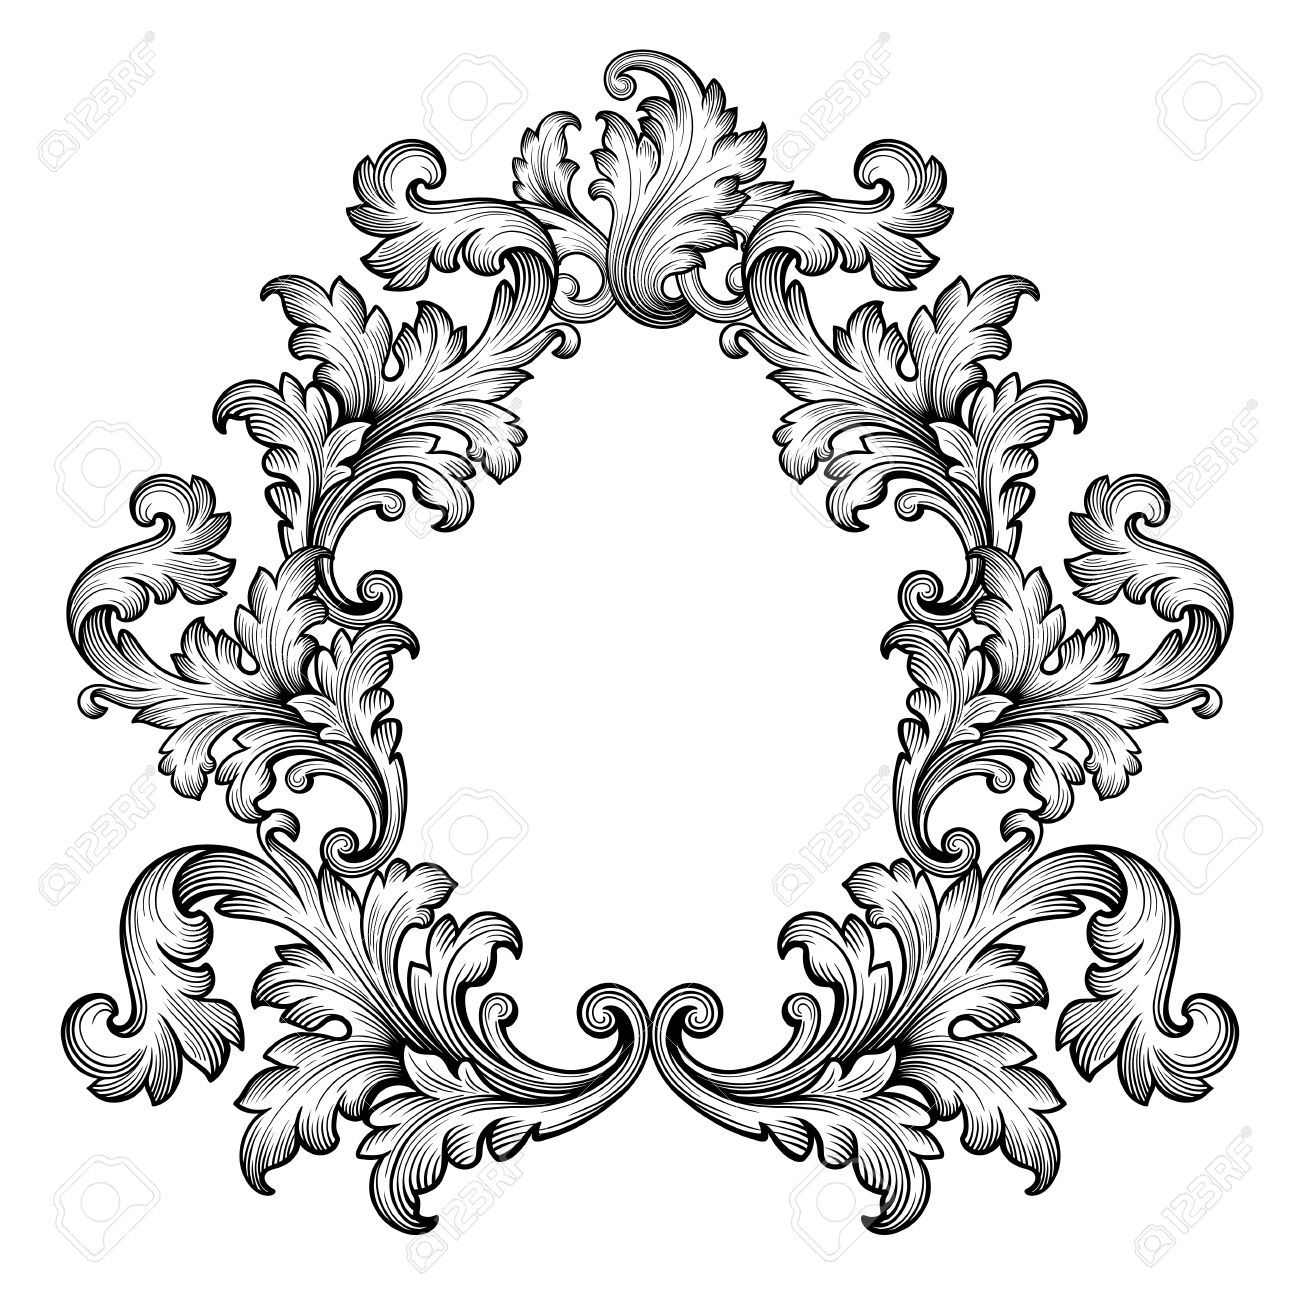 vintage frame tattoo designs. Vintage Baroque Frame Scroll Ornament Engraving Border Retro.. Royalty Free Cliparts, Vectors, And Stock Illustration. Image 35309665. Tattoo Designs